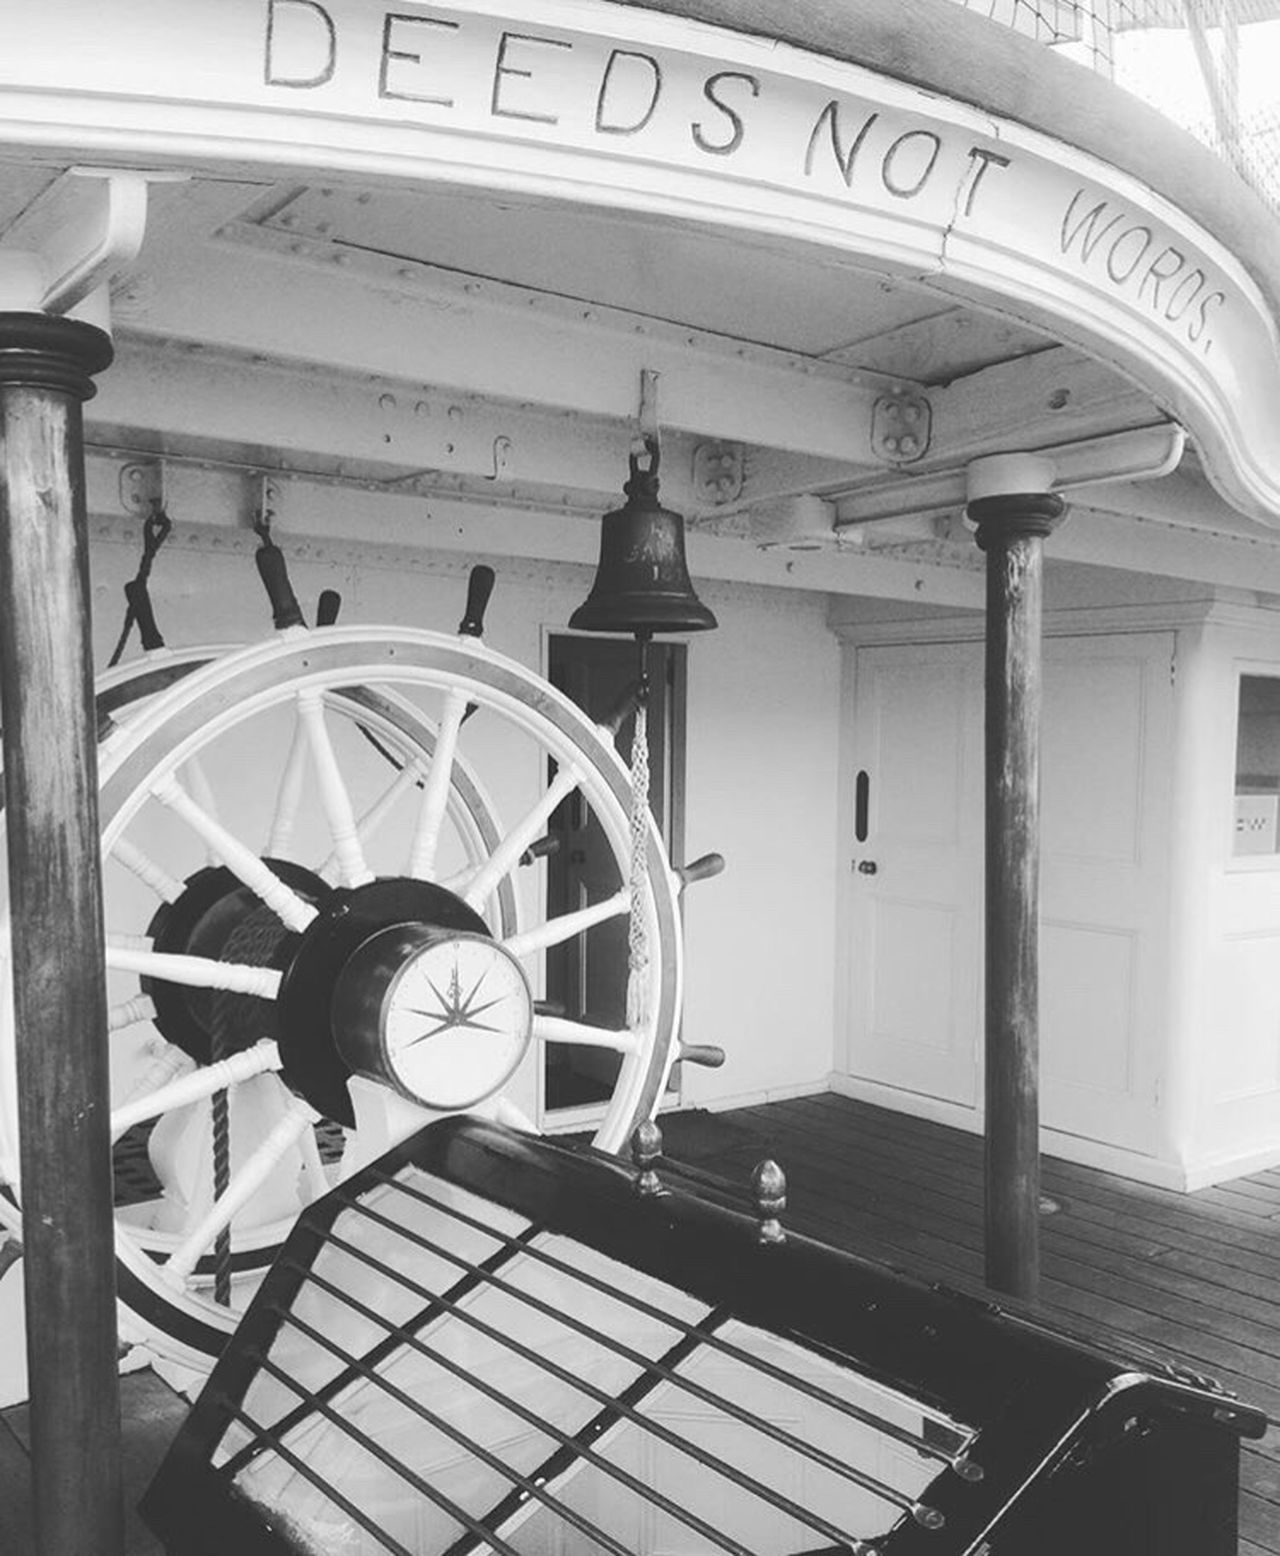 Deeds not words Built Structure Architecture No People Deeds Not Words Deeds Boat Dockyard Chatham Kent Dockside On A Boat